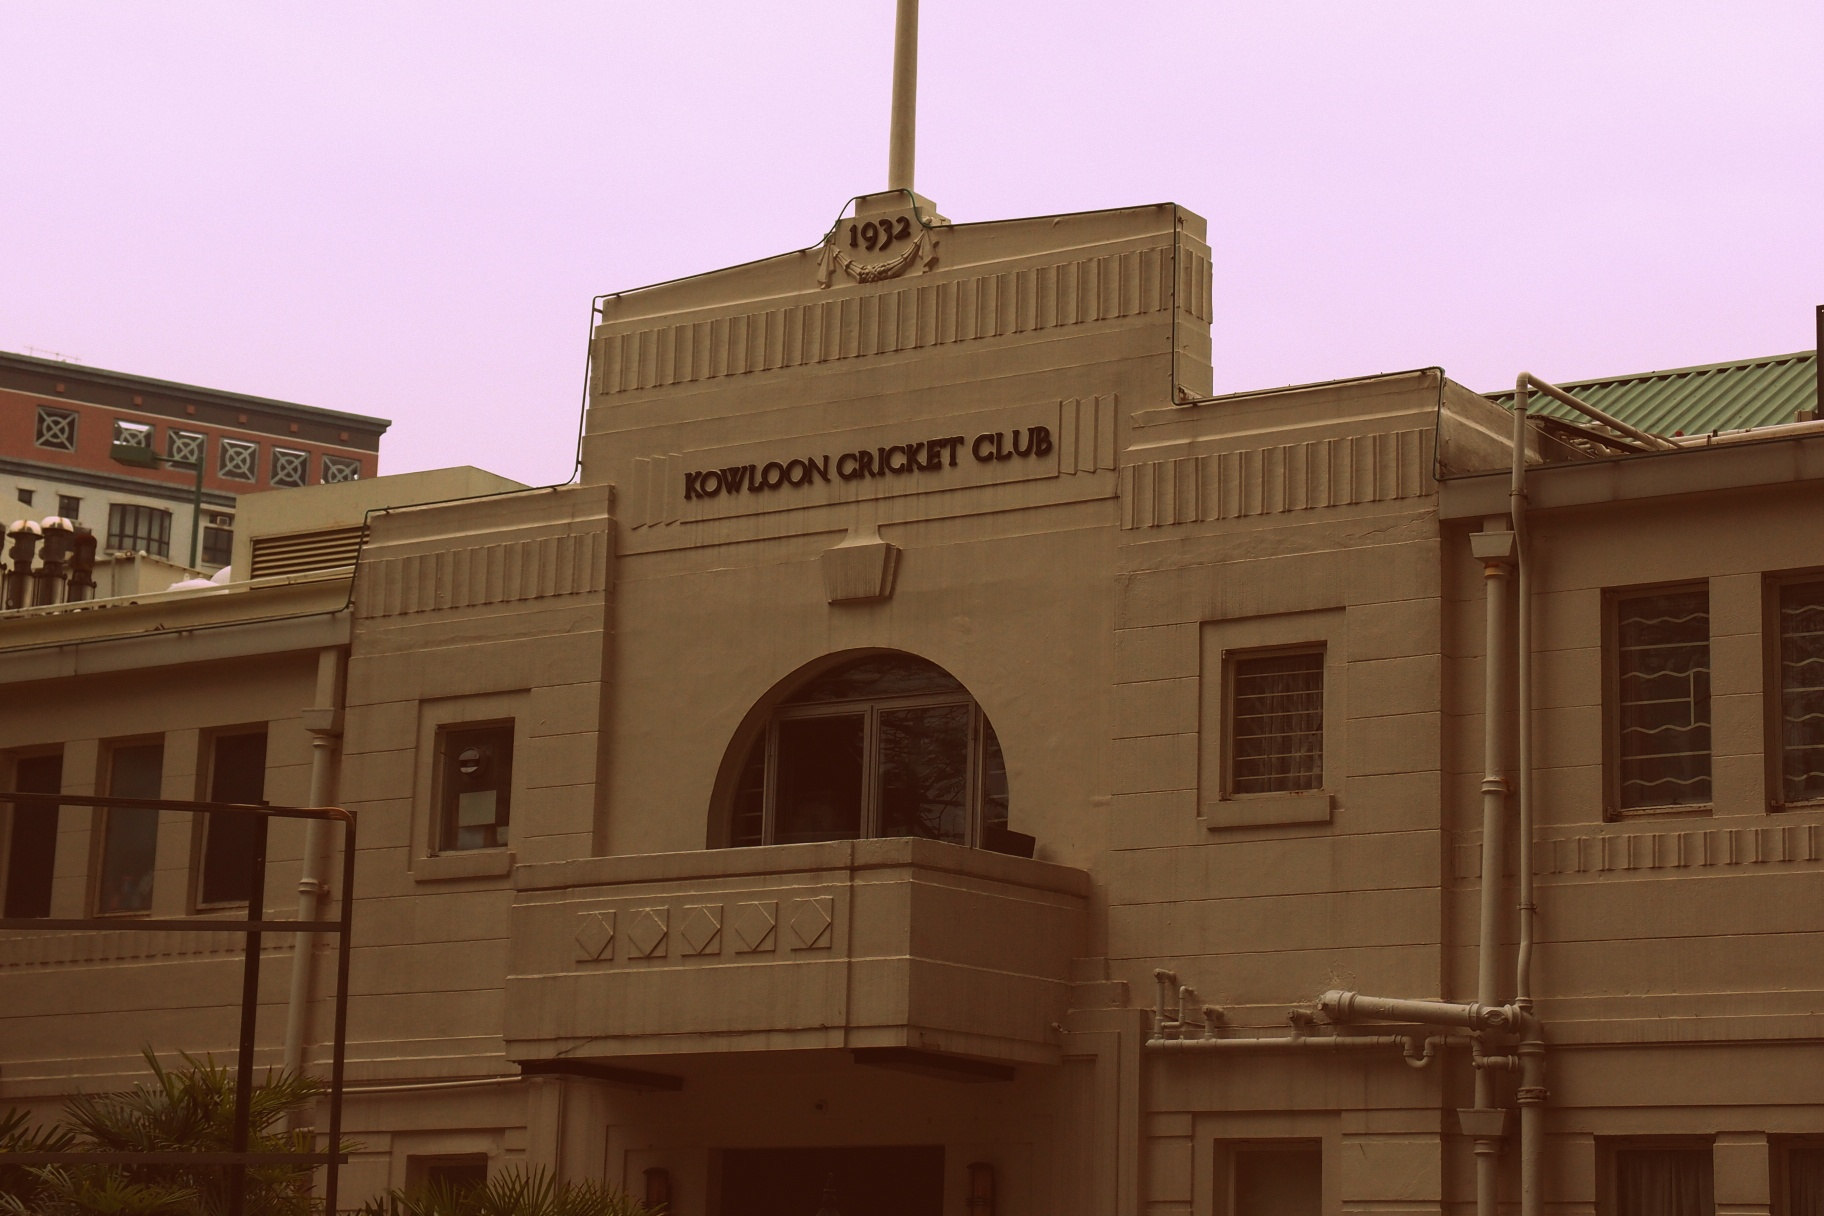 The Kowloon Cricket Club, somewhat of an institution in Hong Kong